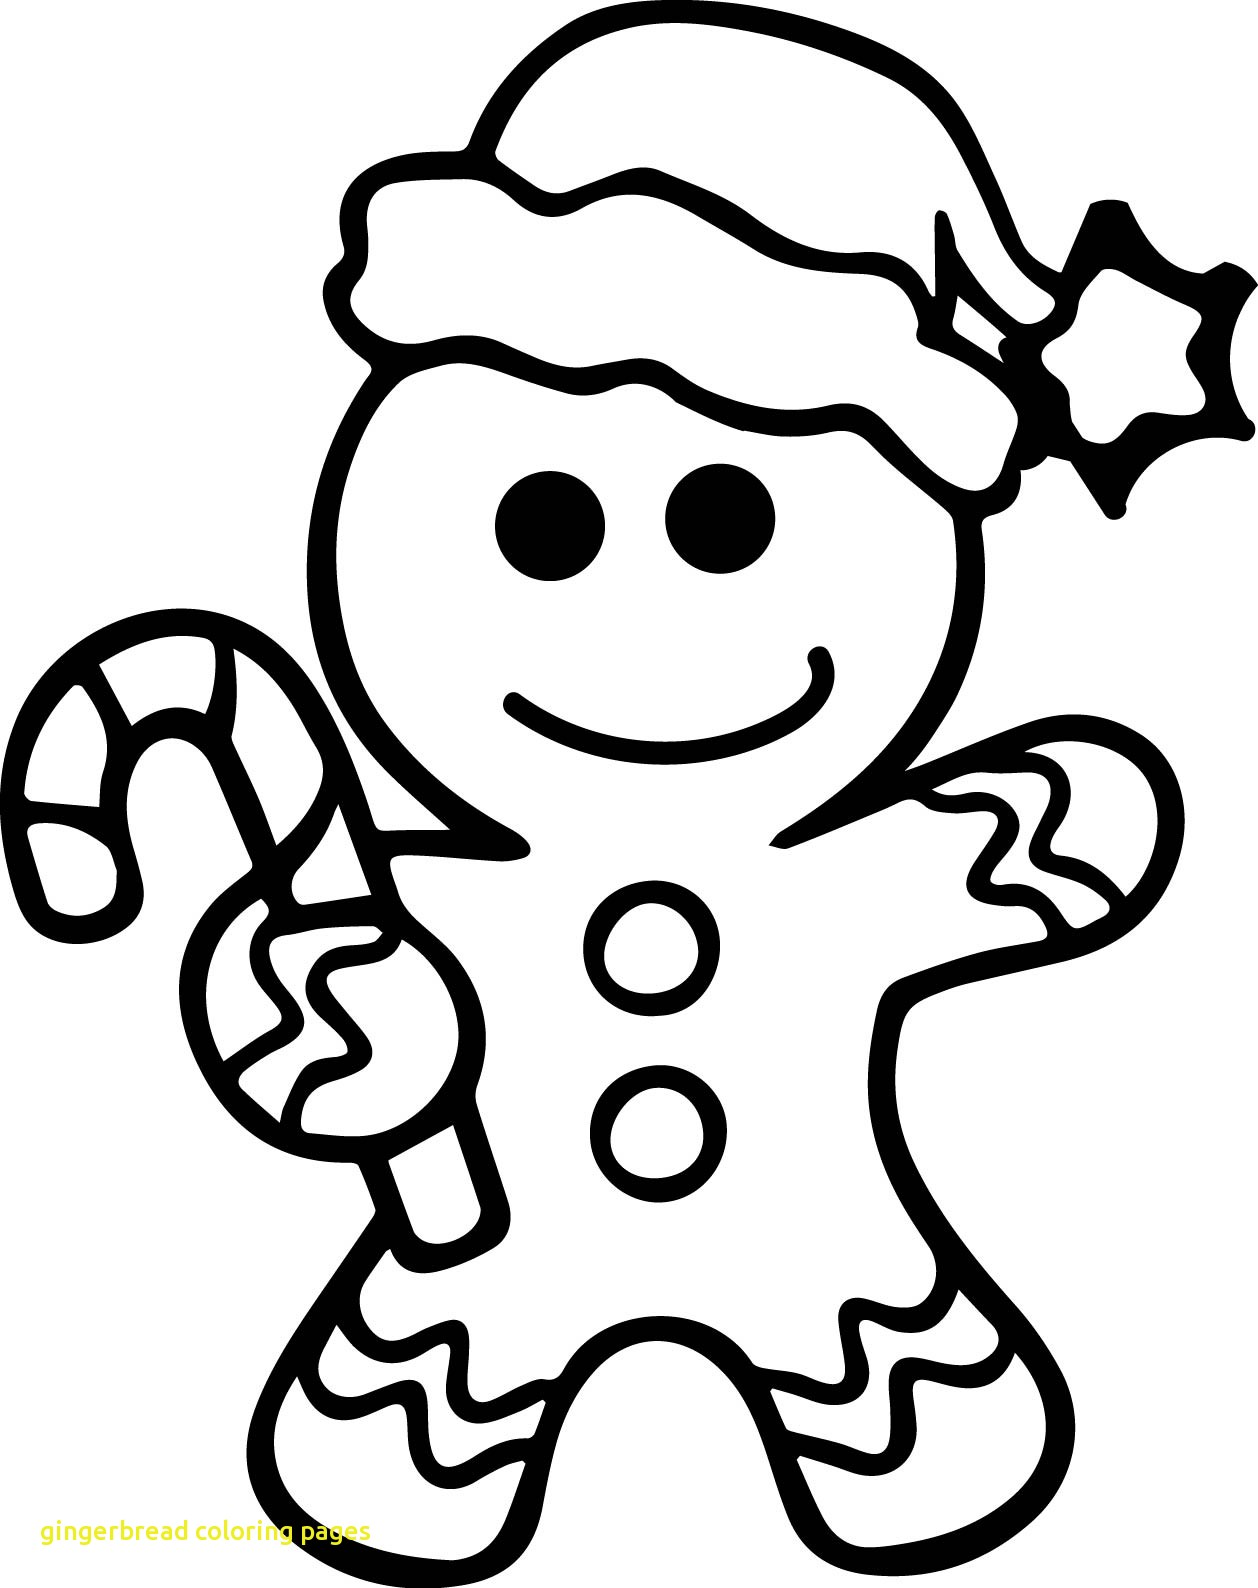 Ginger Bread Man Drawing At Getdrawings